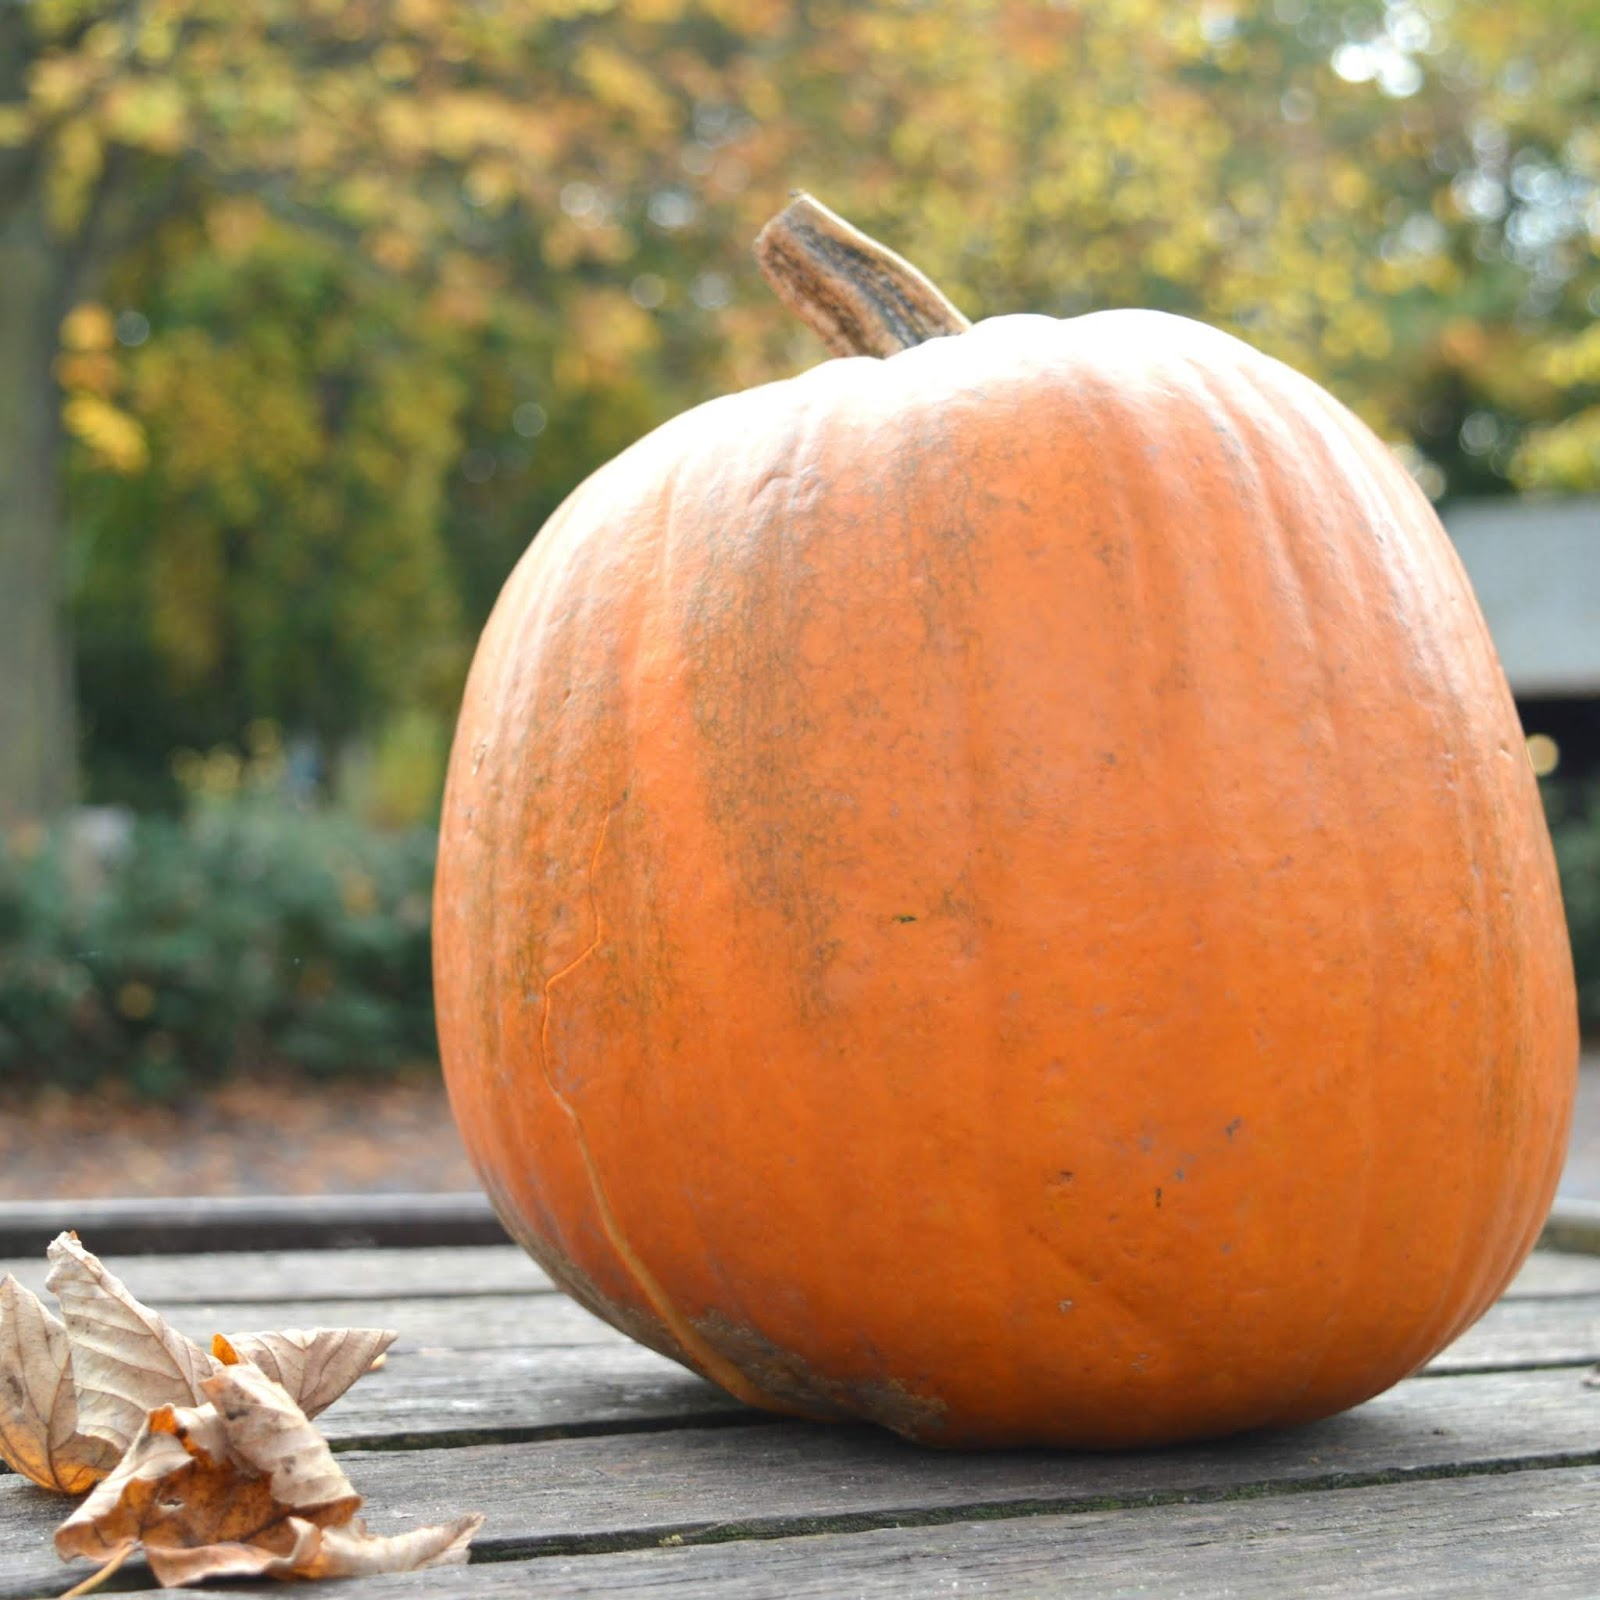 Autumn Days Out in the North East - Pumpkin Picking